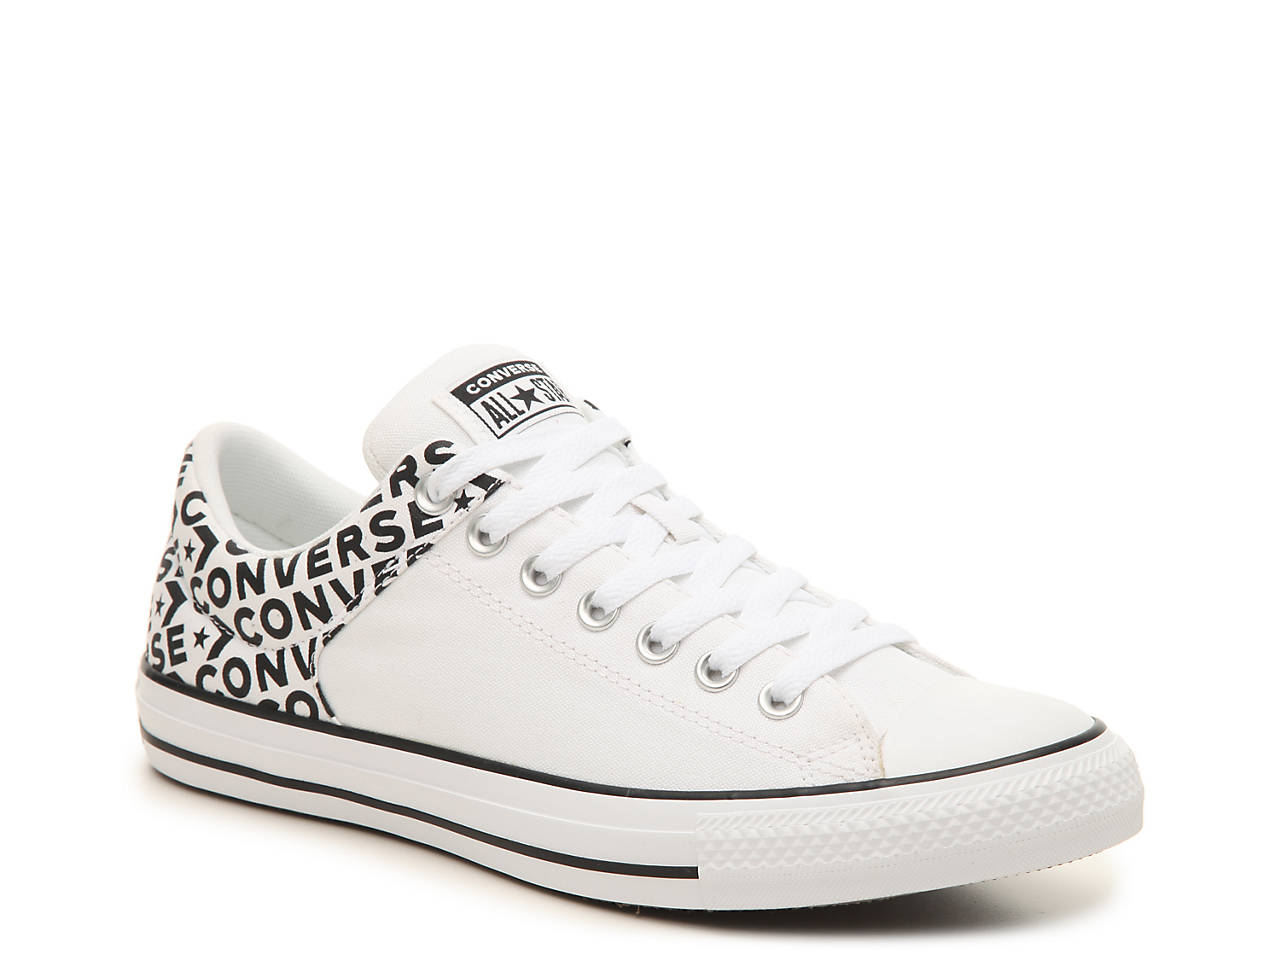 bb35f29af5 Converse Chuck Taylor All Star Hi Street Word Sneaker - Men's Men's ...